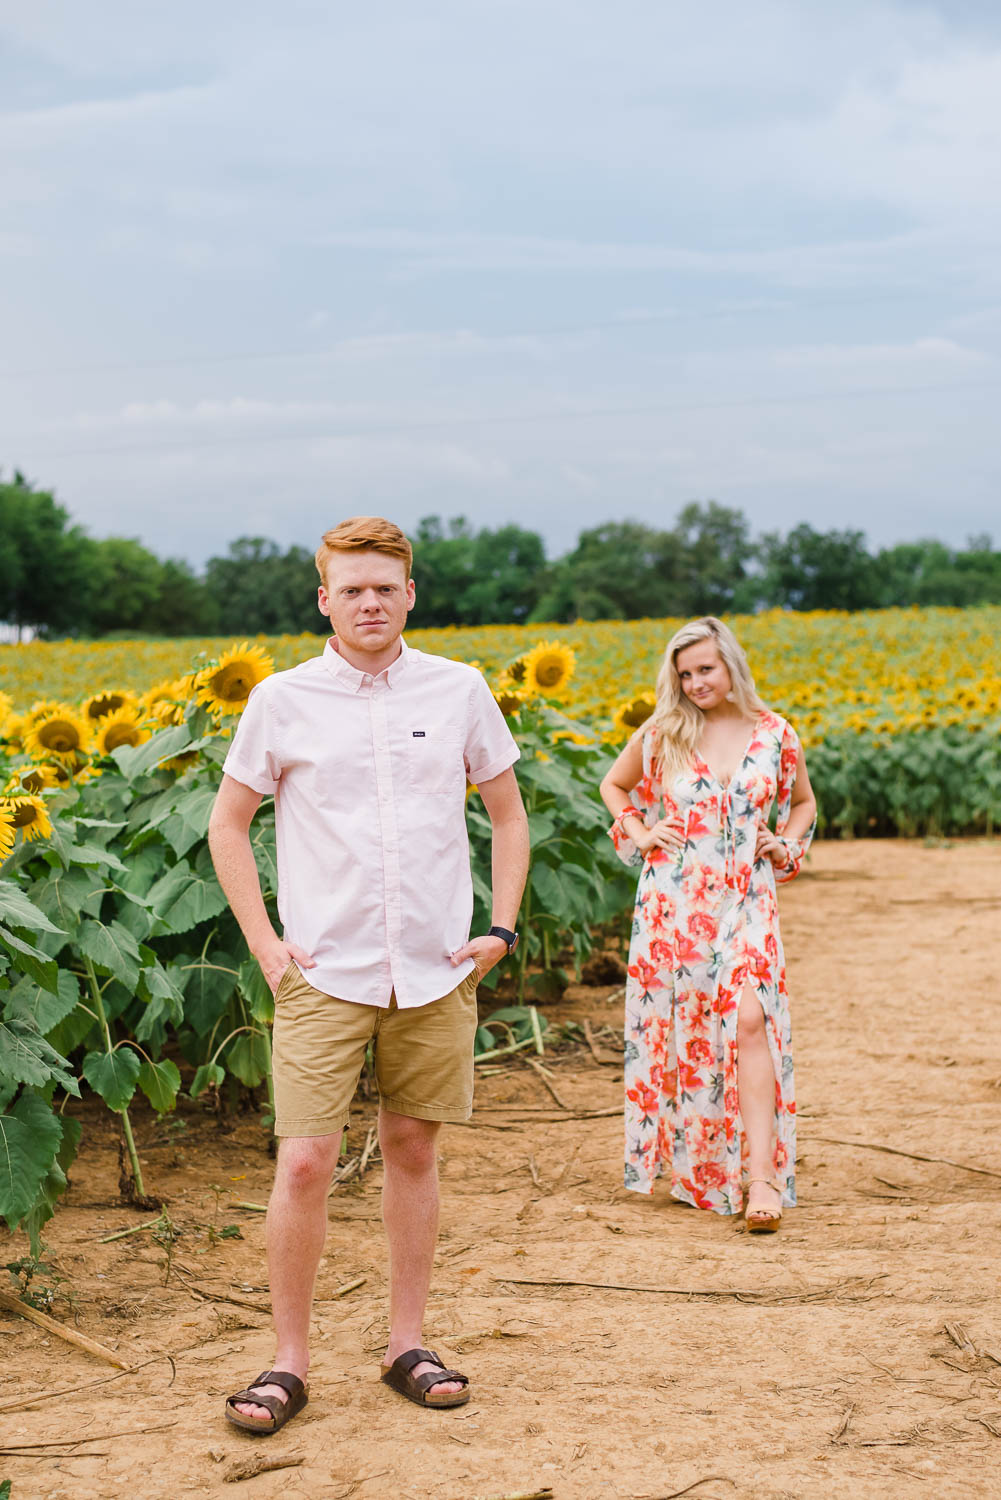 two people in sunflowers field with one standing close to camera and the other off in the distance